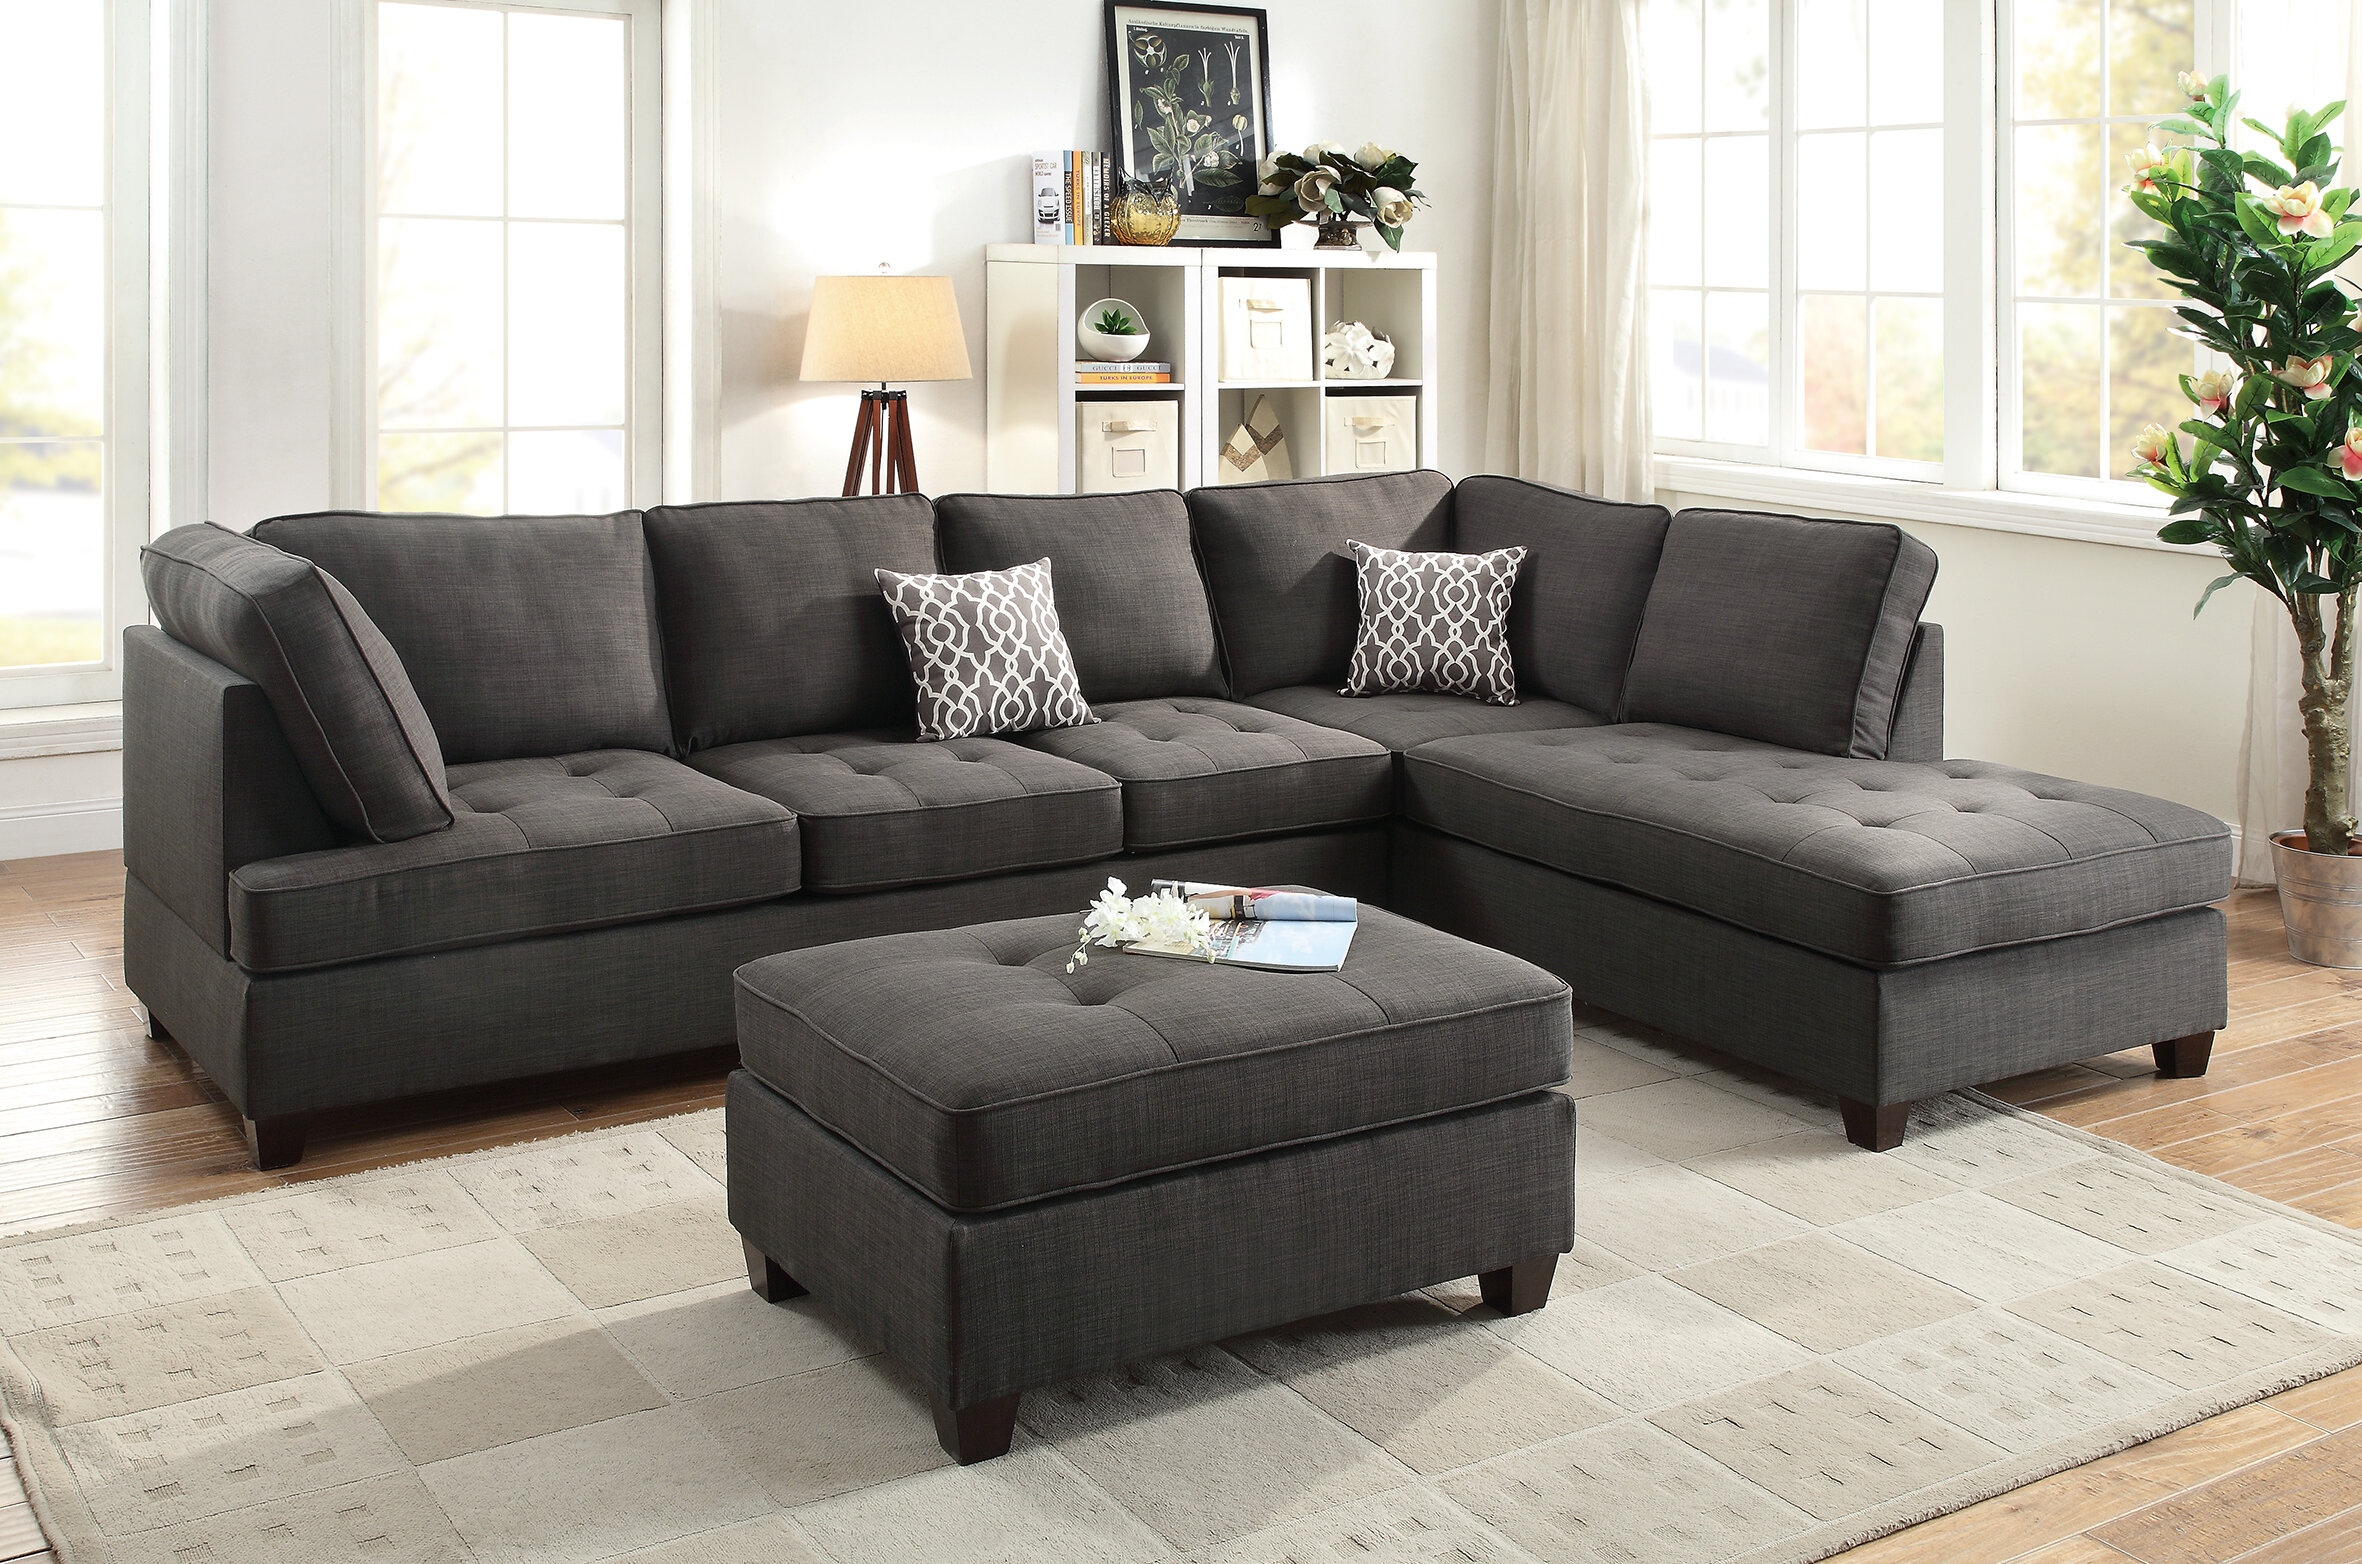 Charlton Home Allenhurst Right Hand Facing Sectional With Ottoman Reviews Wayfair